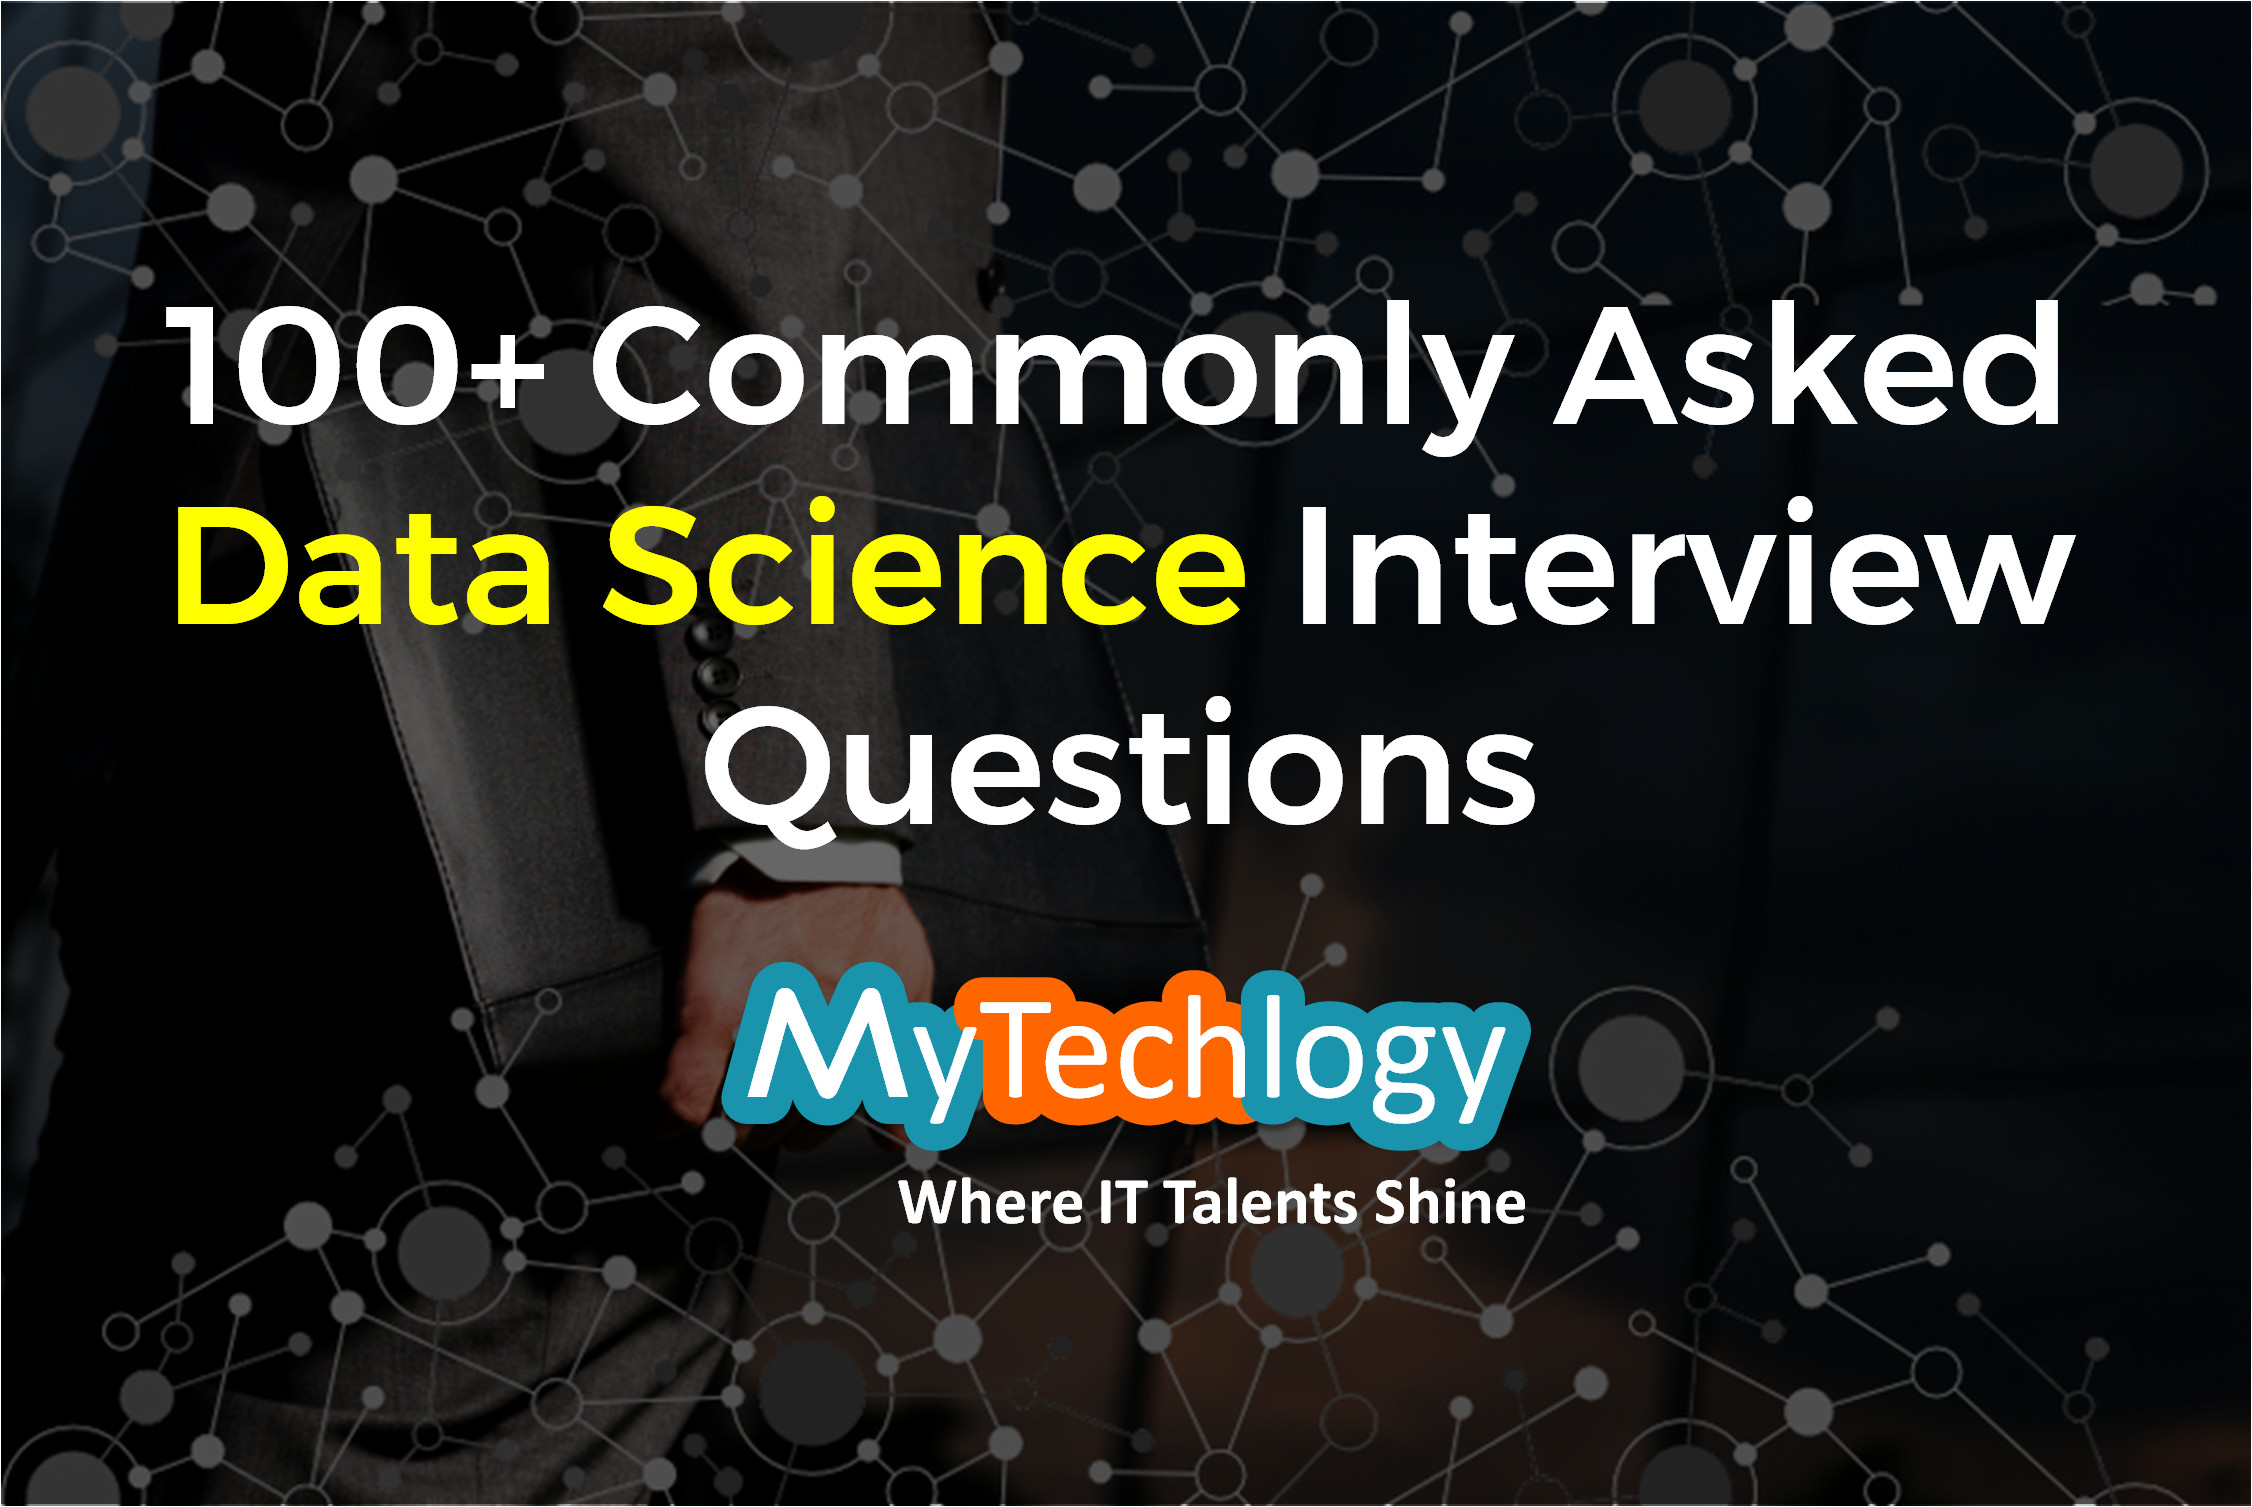 100+ Commonly Asked Data Science Interview Questions - Image 1